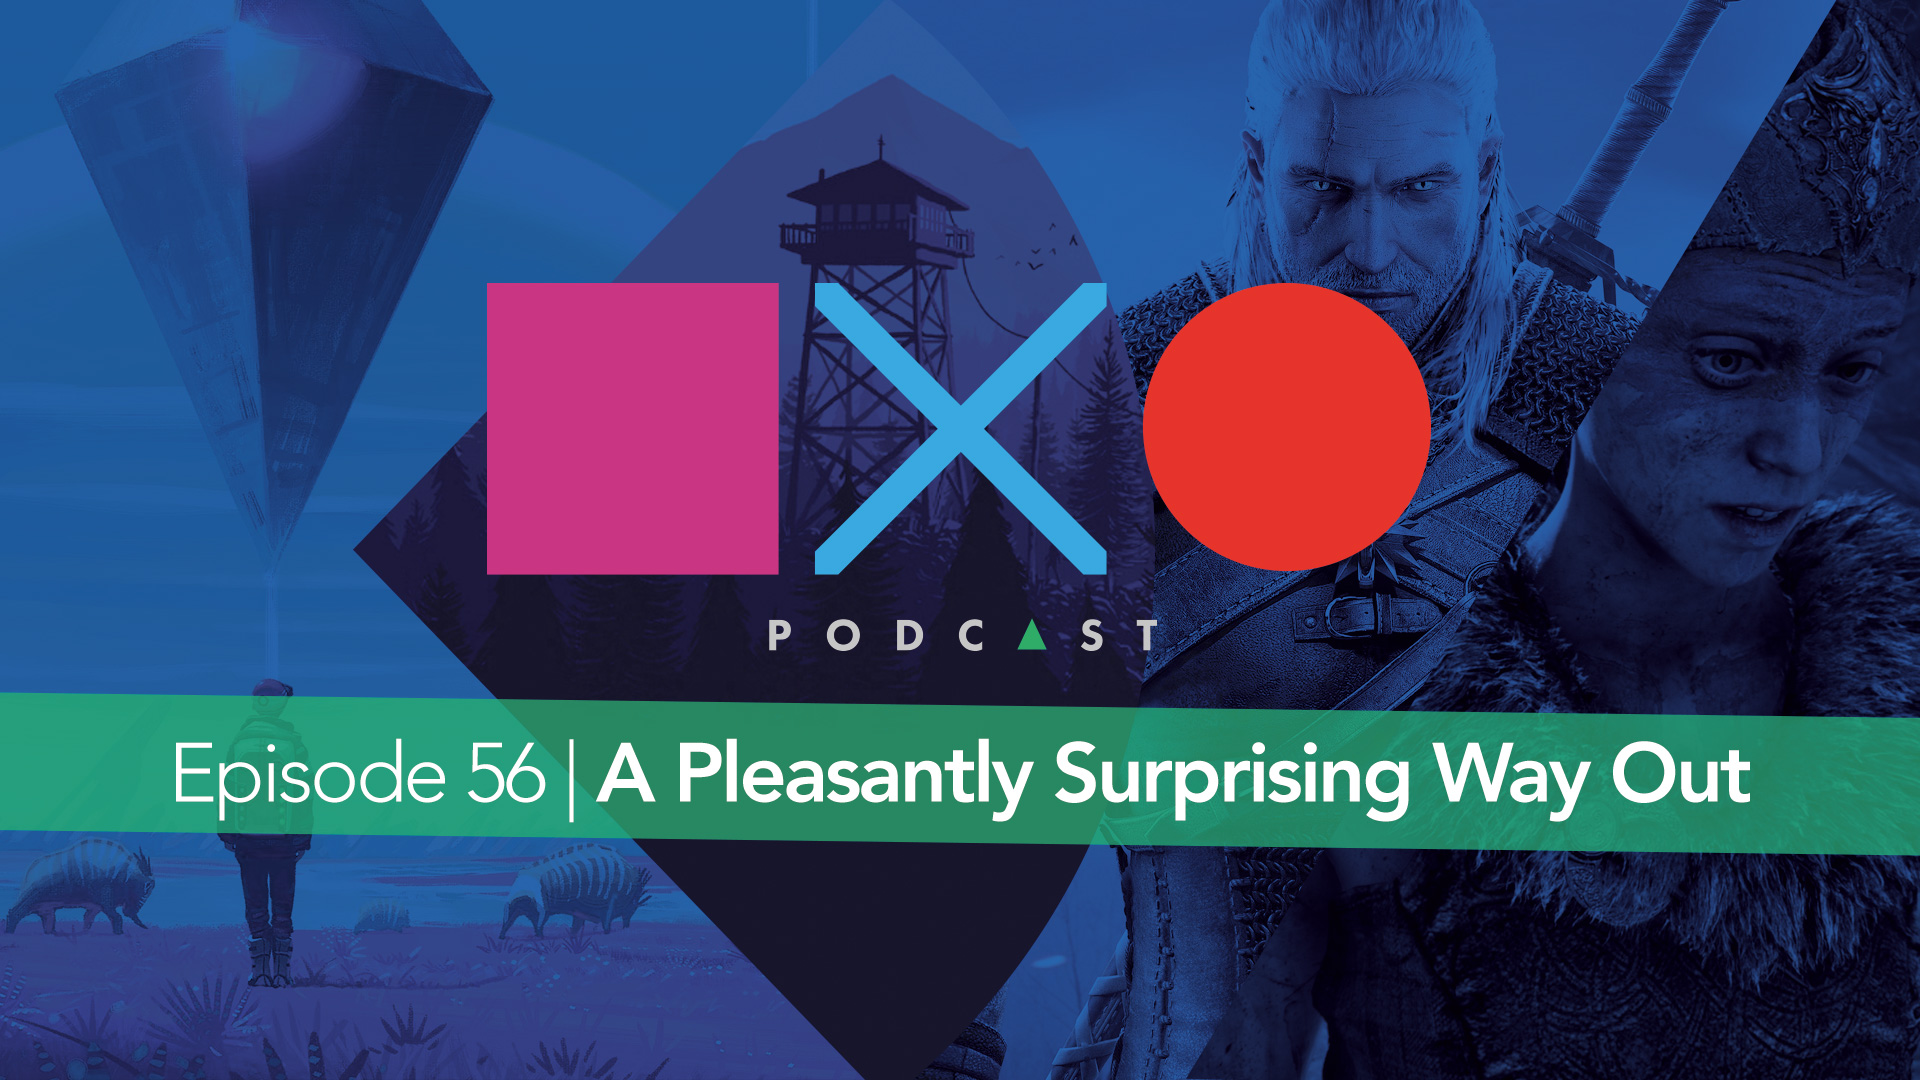 Episode 56 | A Pleasantly Surprising Way Out